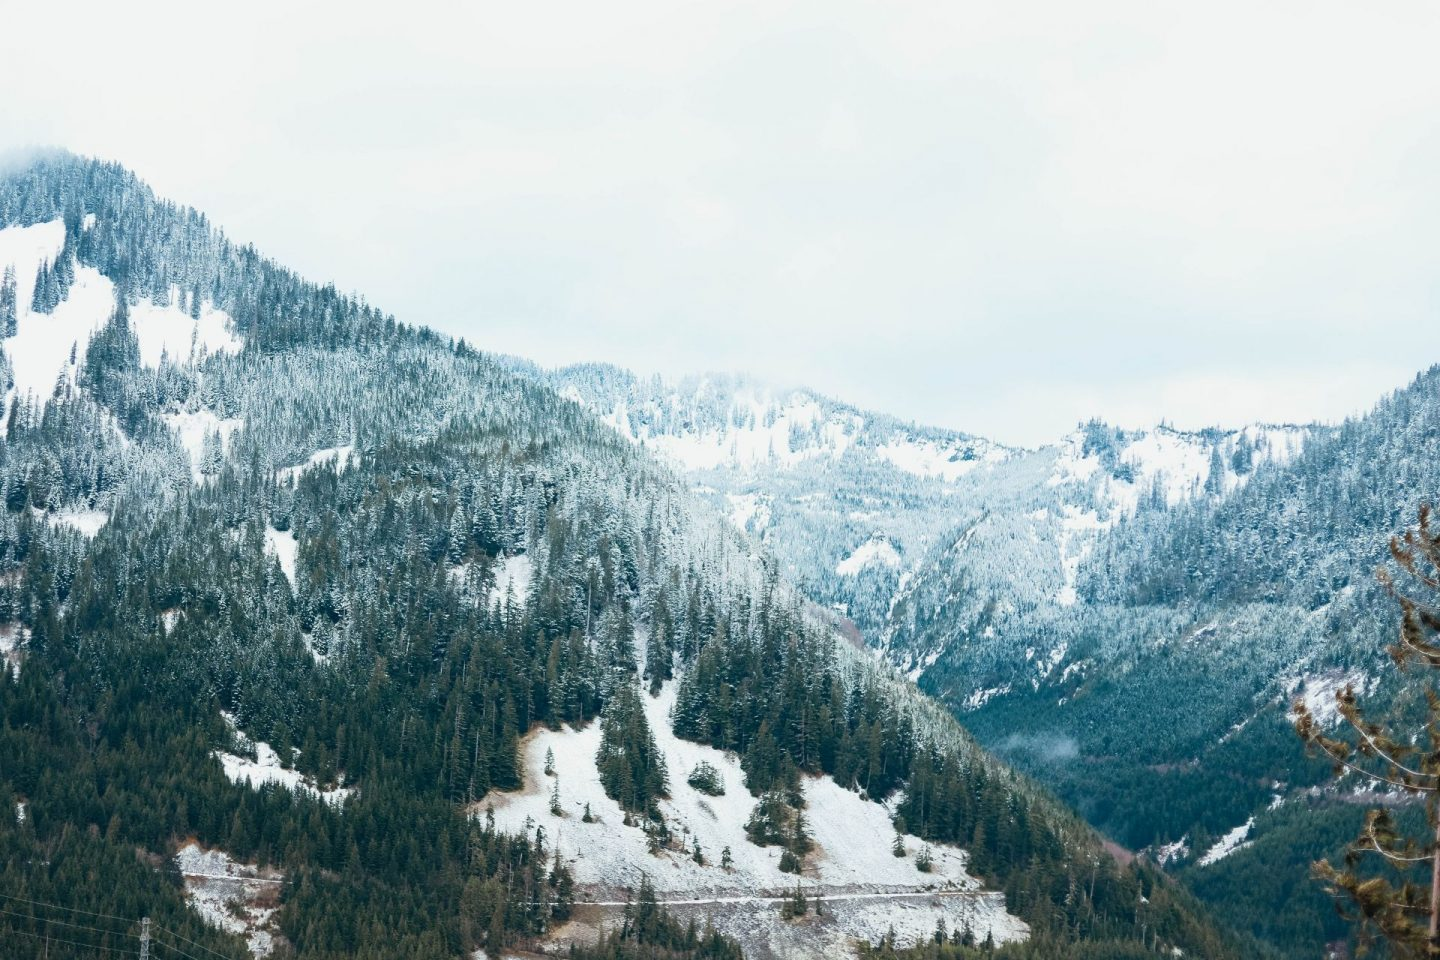 snowy mountain hikes pnw